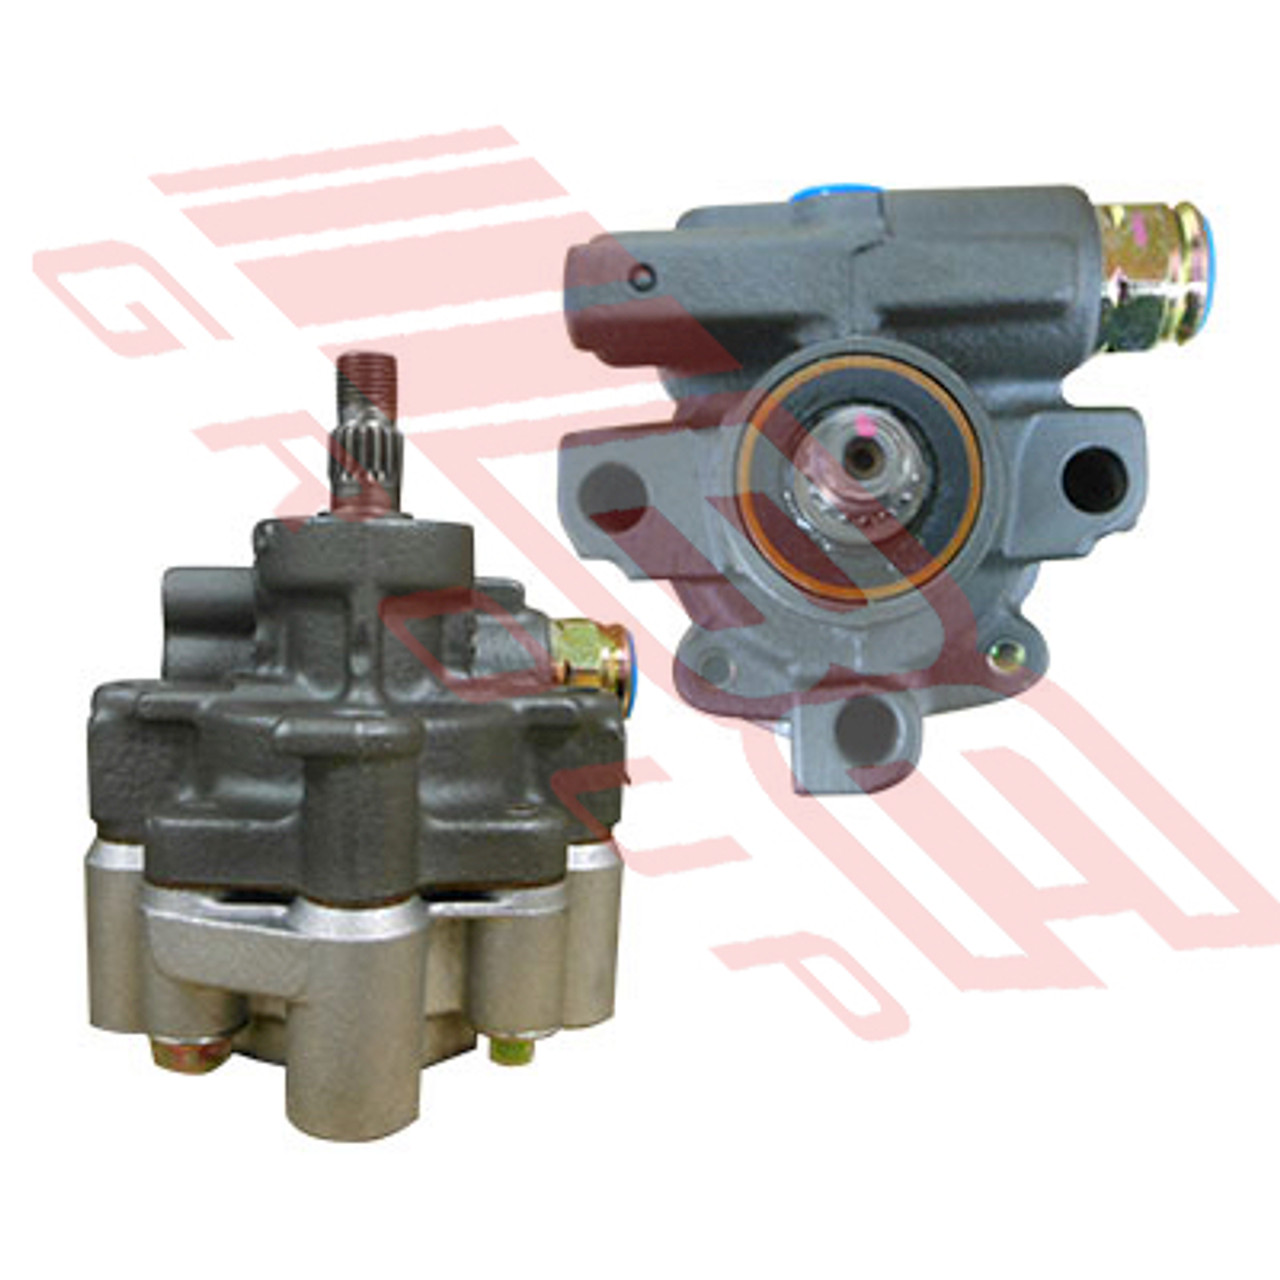 hight resolution of 1999 toyotum camry power steering pump